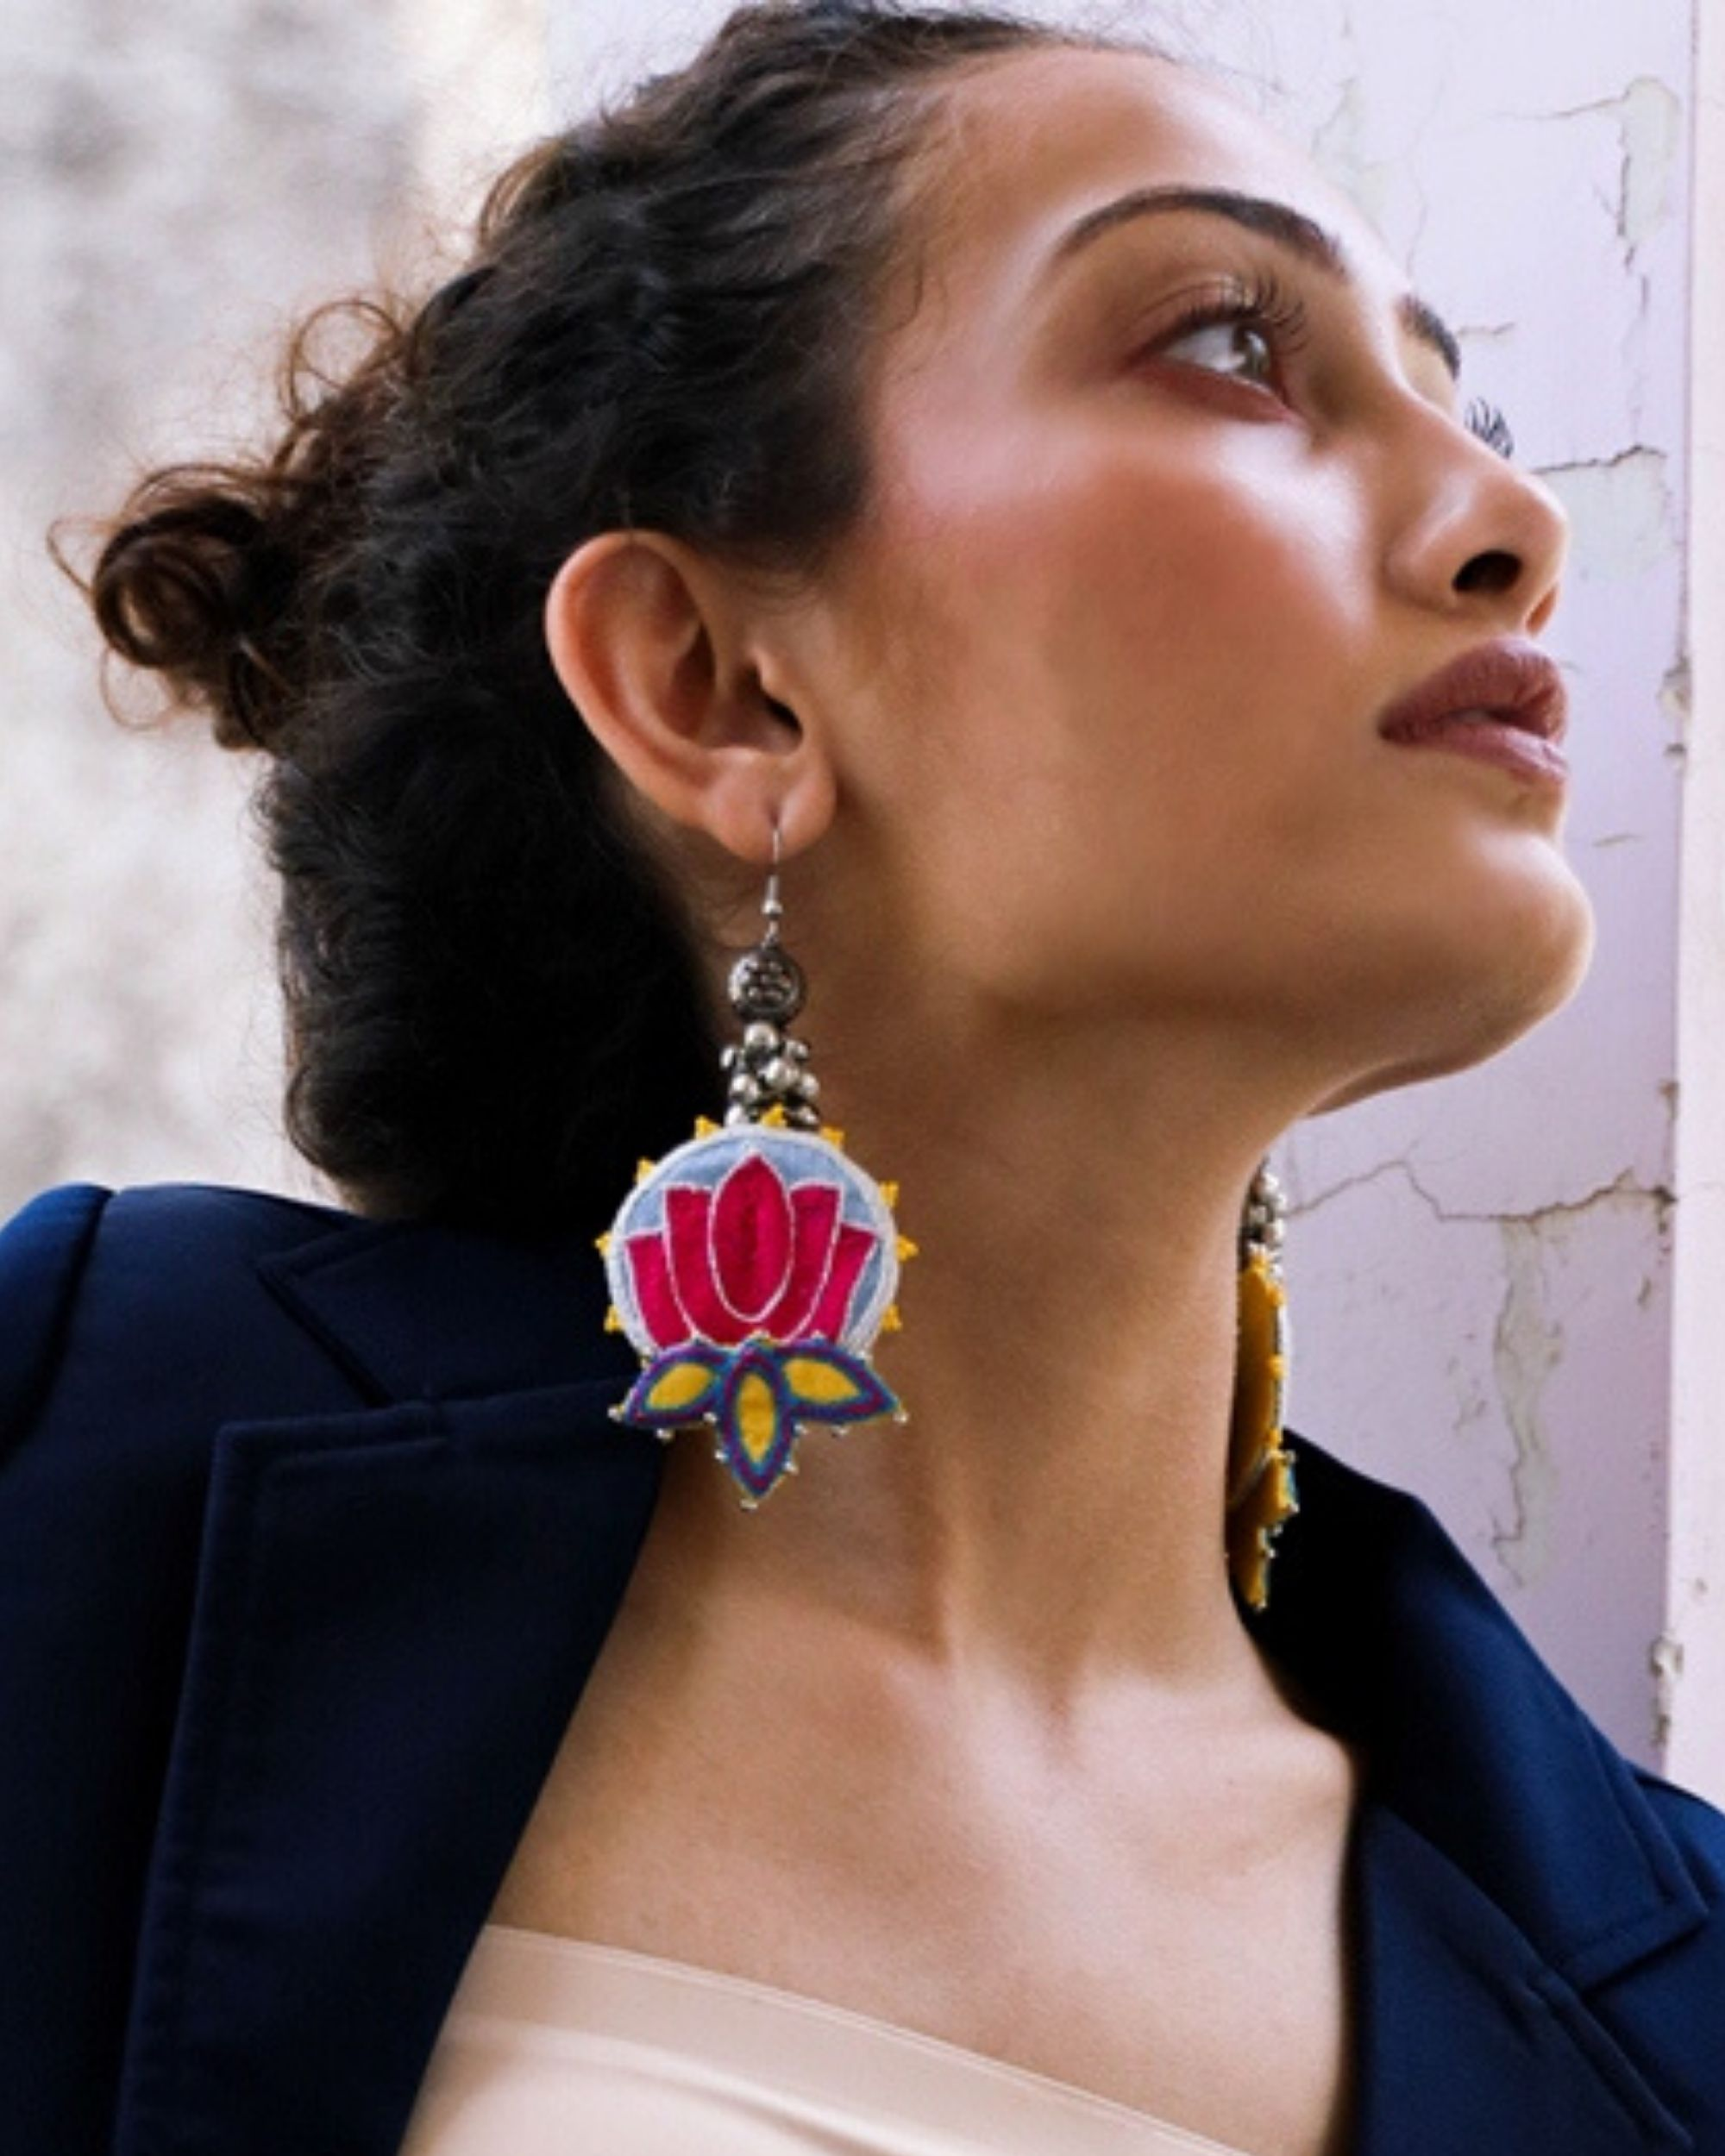 Pink and blue lotus embroidered and beads earring